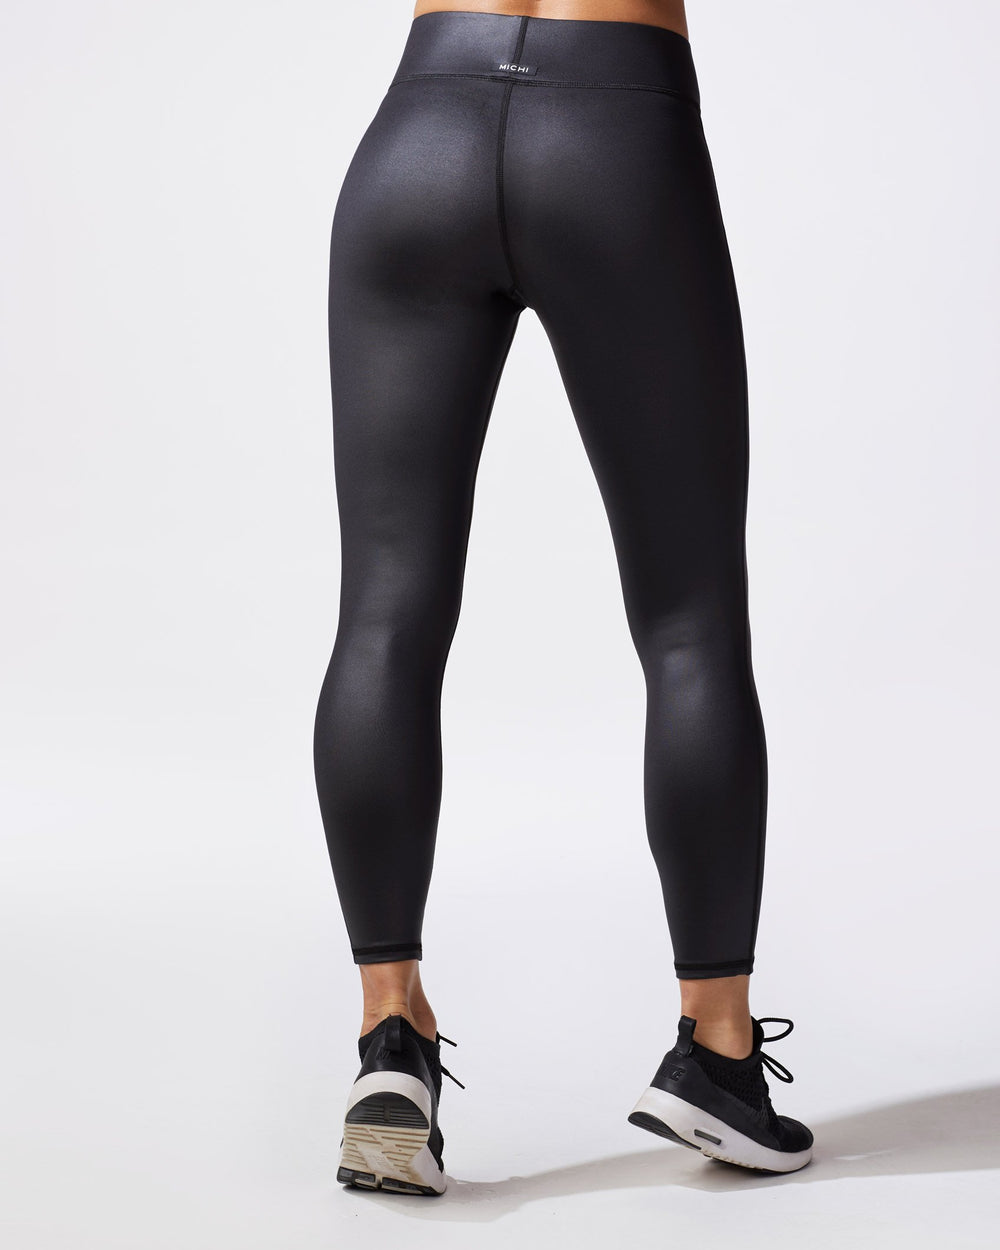 Verve Legging - Black